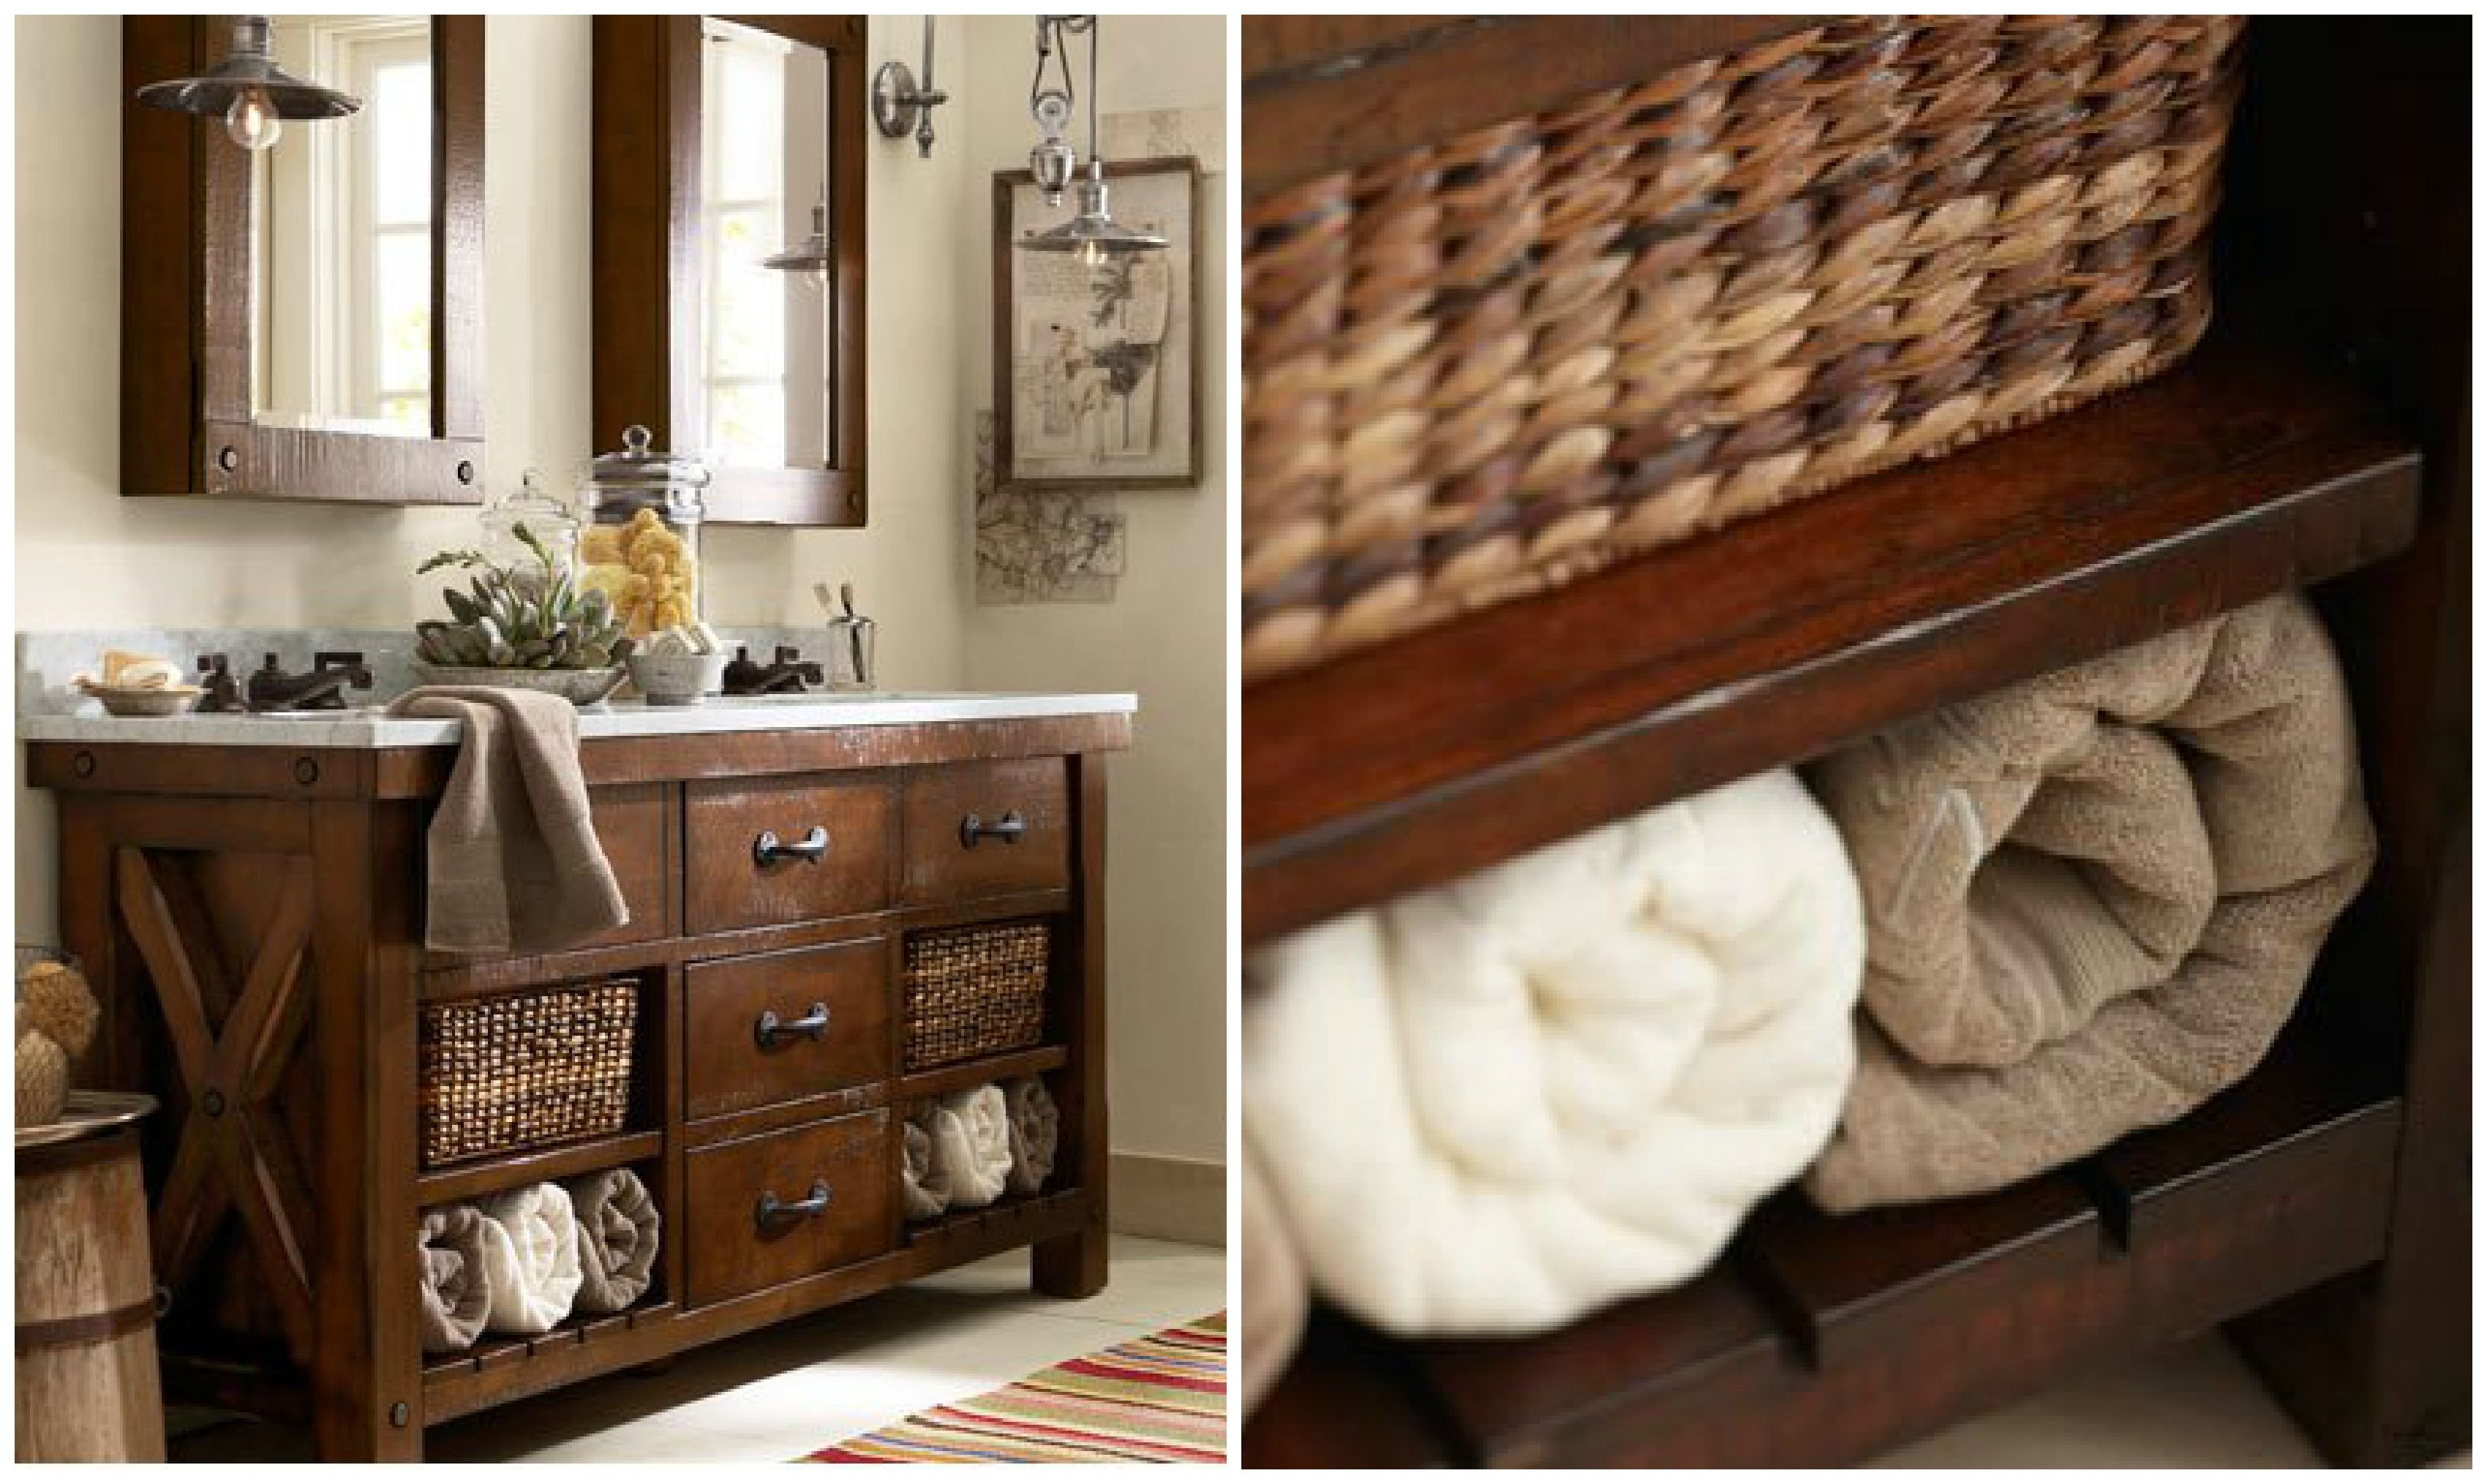 western bathroom designs. Bathroom Decor Ideas- Roll The Towel Western Designs S